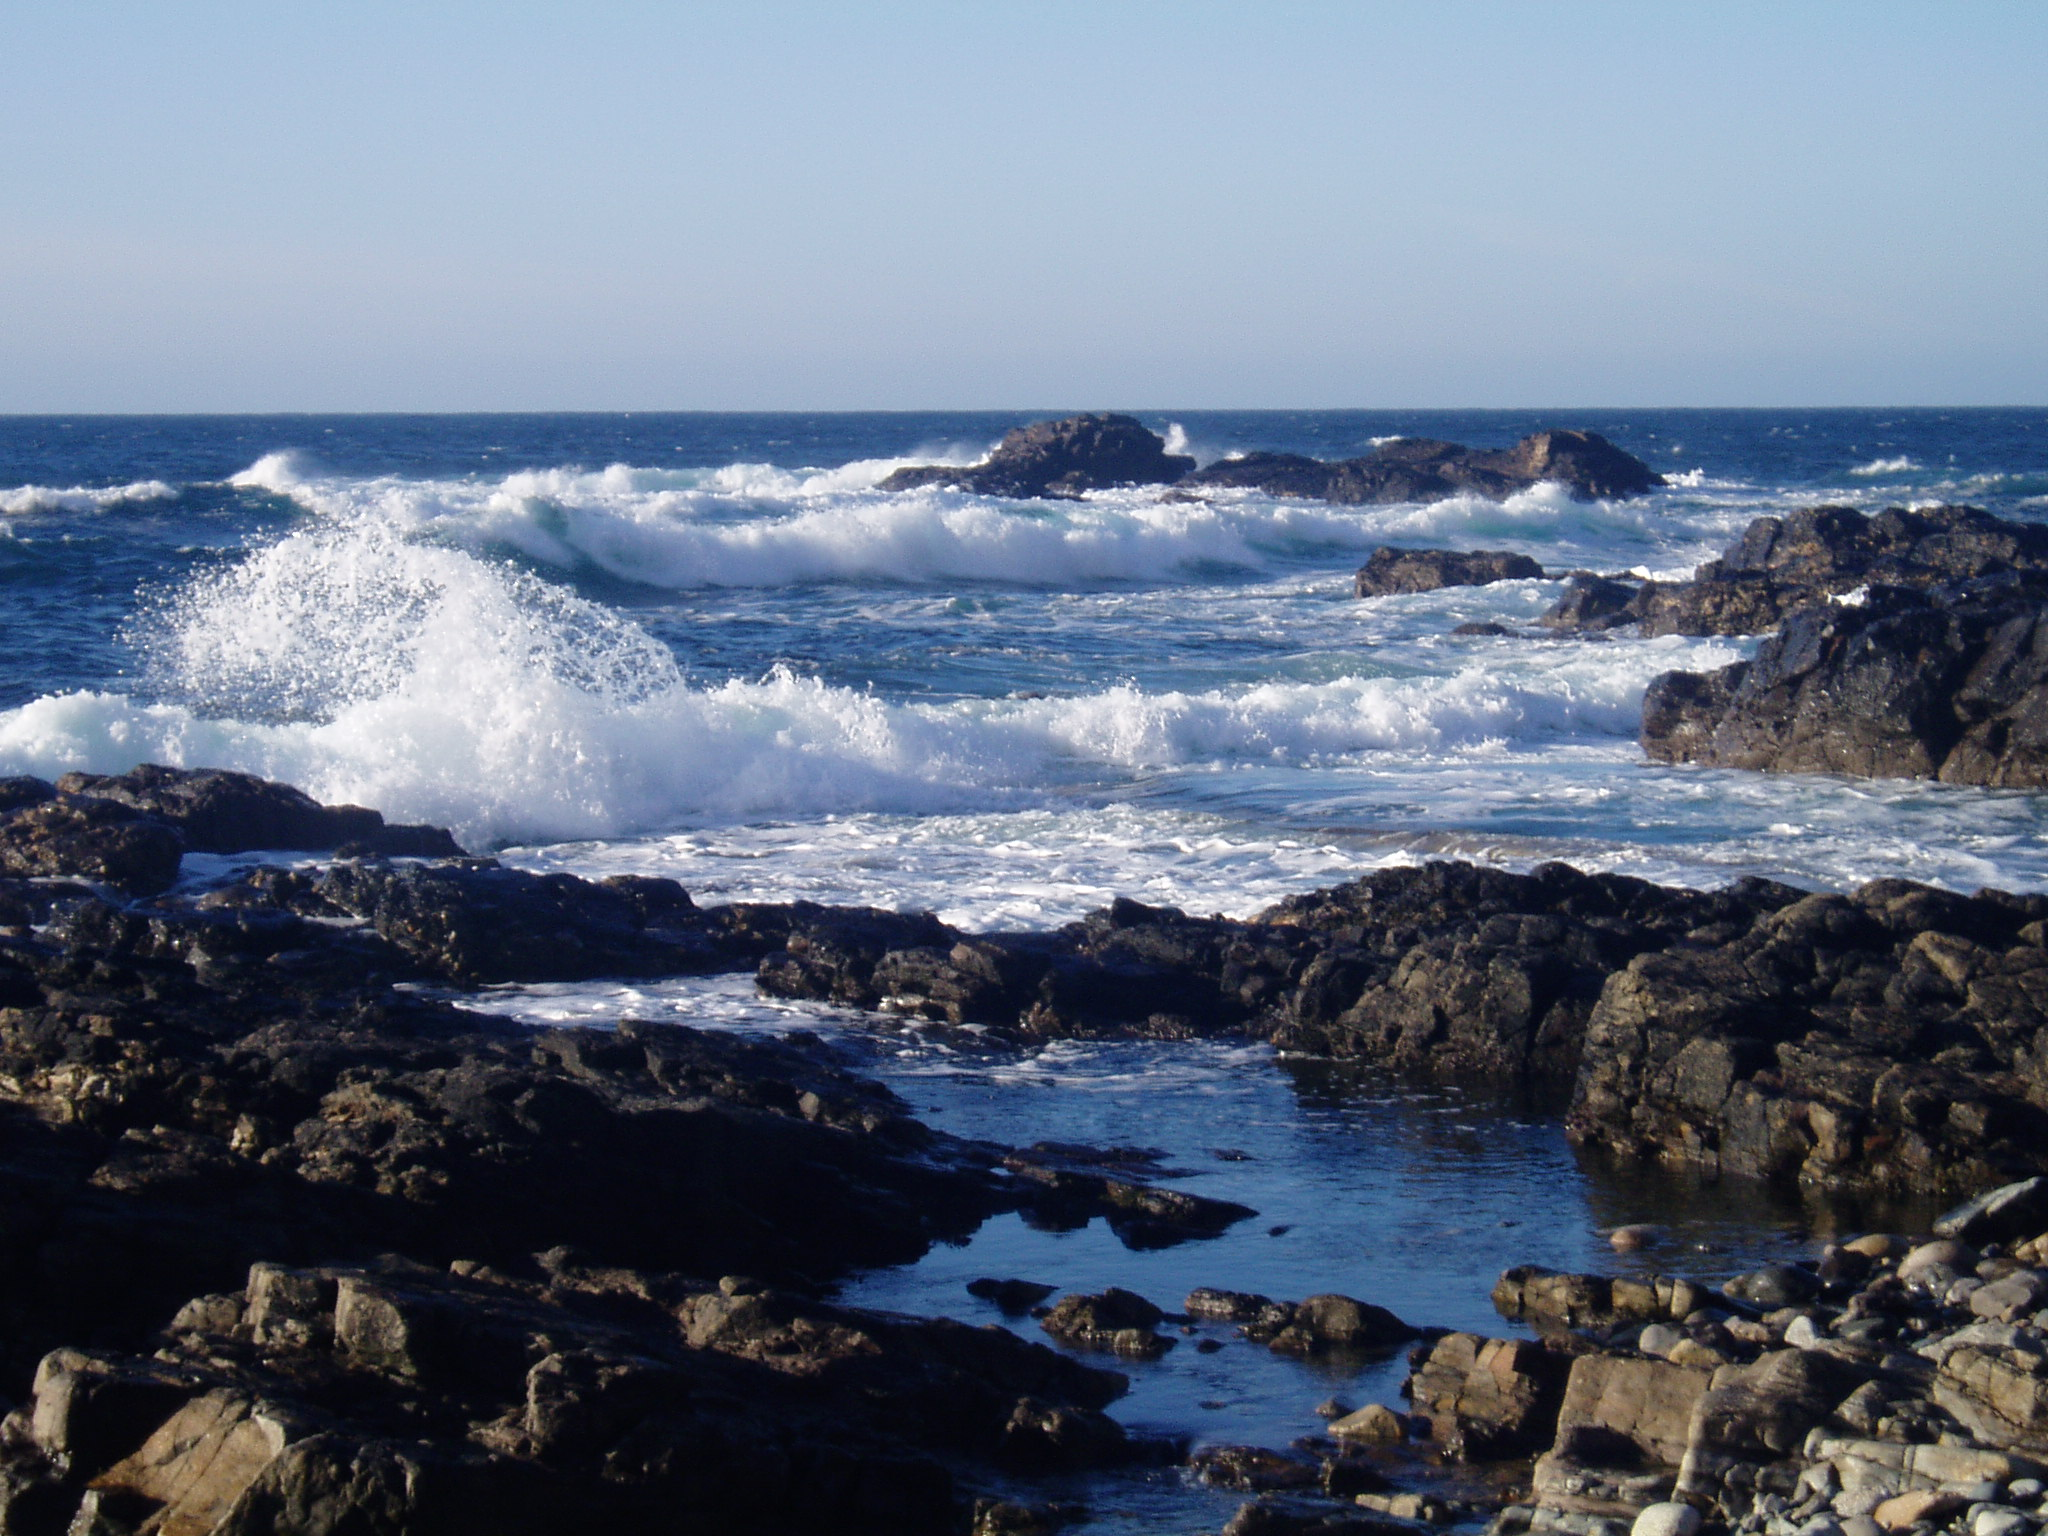 Waves breaking at Priests Cove, Cape Cornwall.